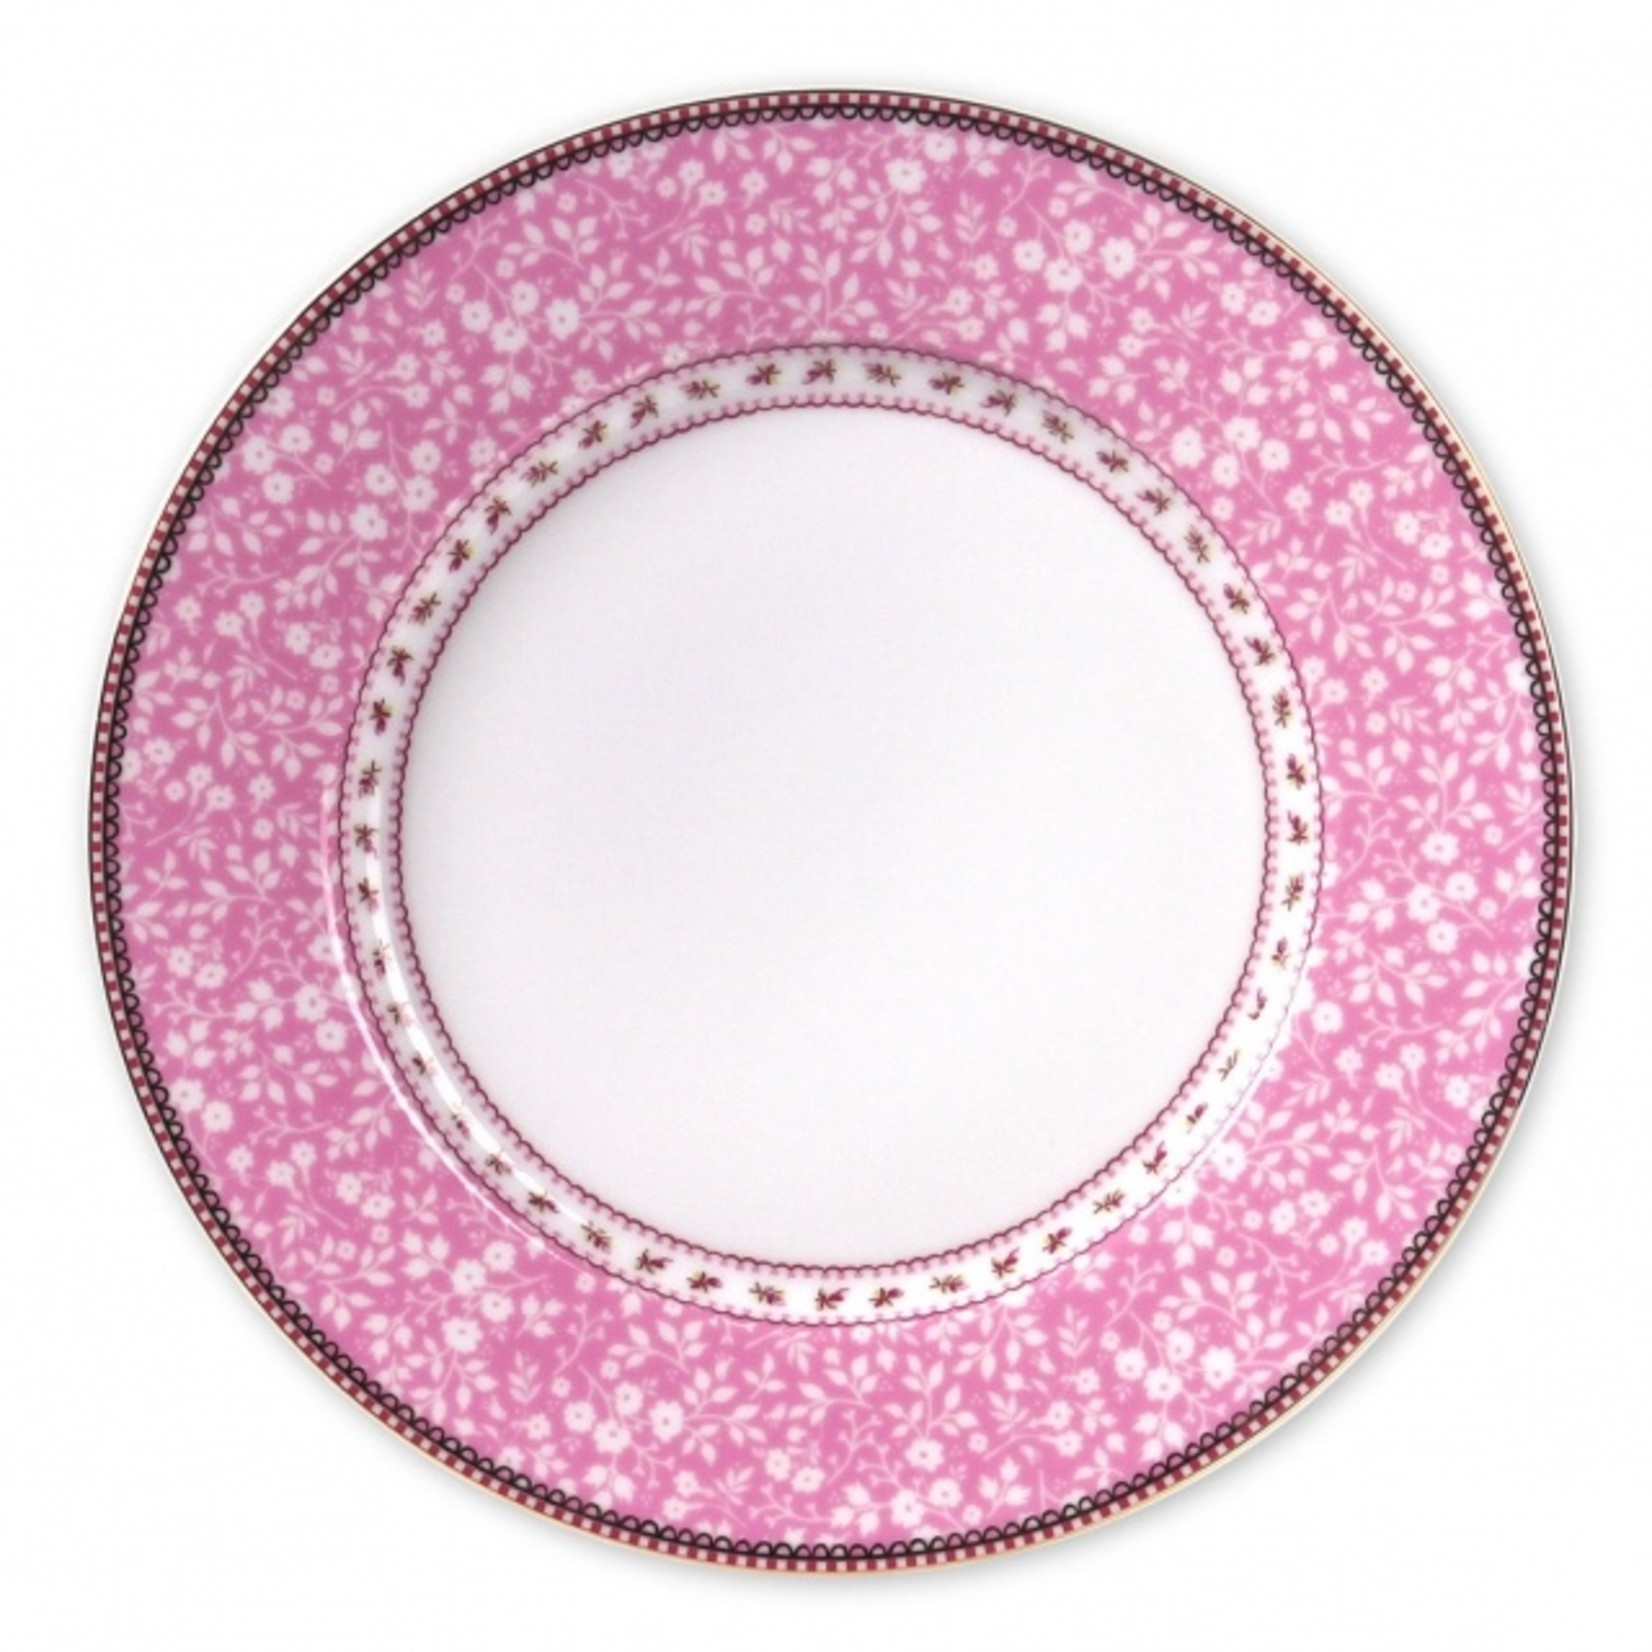 Pip Studio Early Bird Plate Lovely Branches Pink 26.5cm